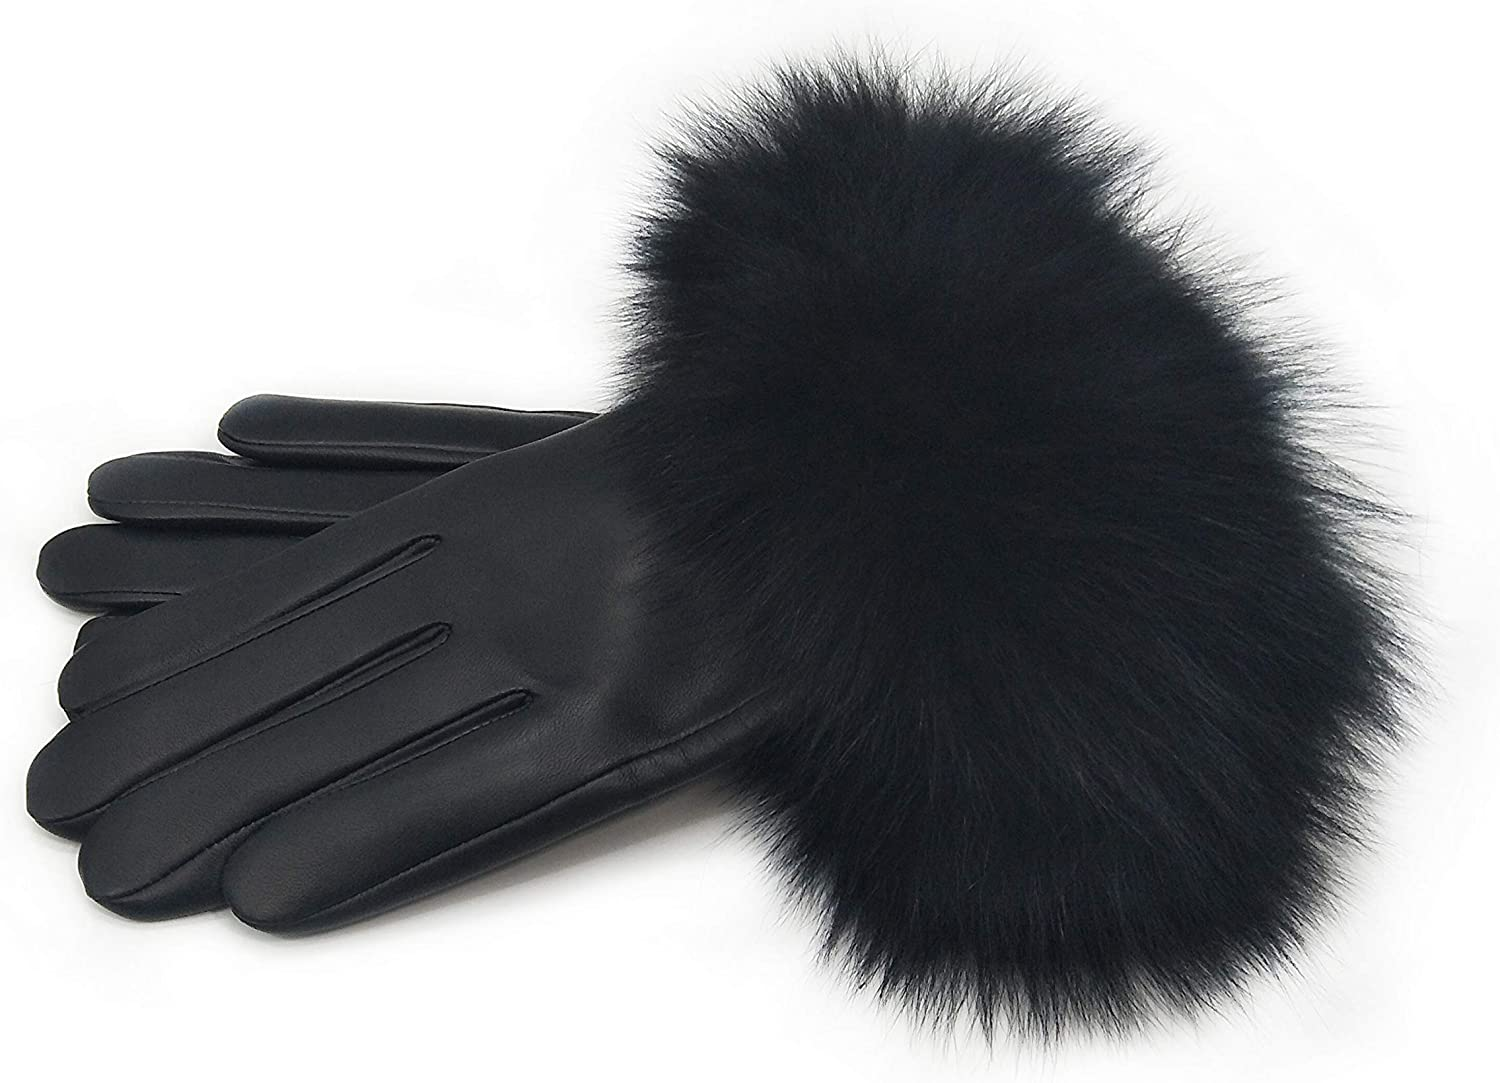 Cashmere Lined Premium Lambskin Leather Gloves with Fox Fur Trim